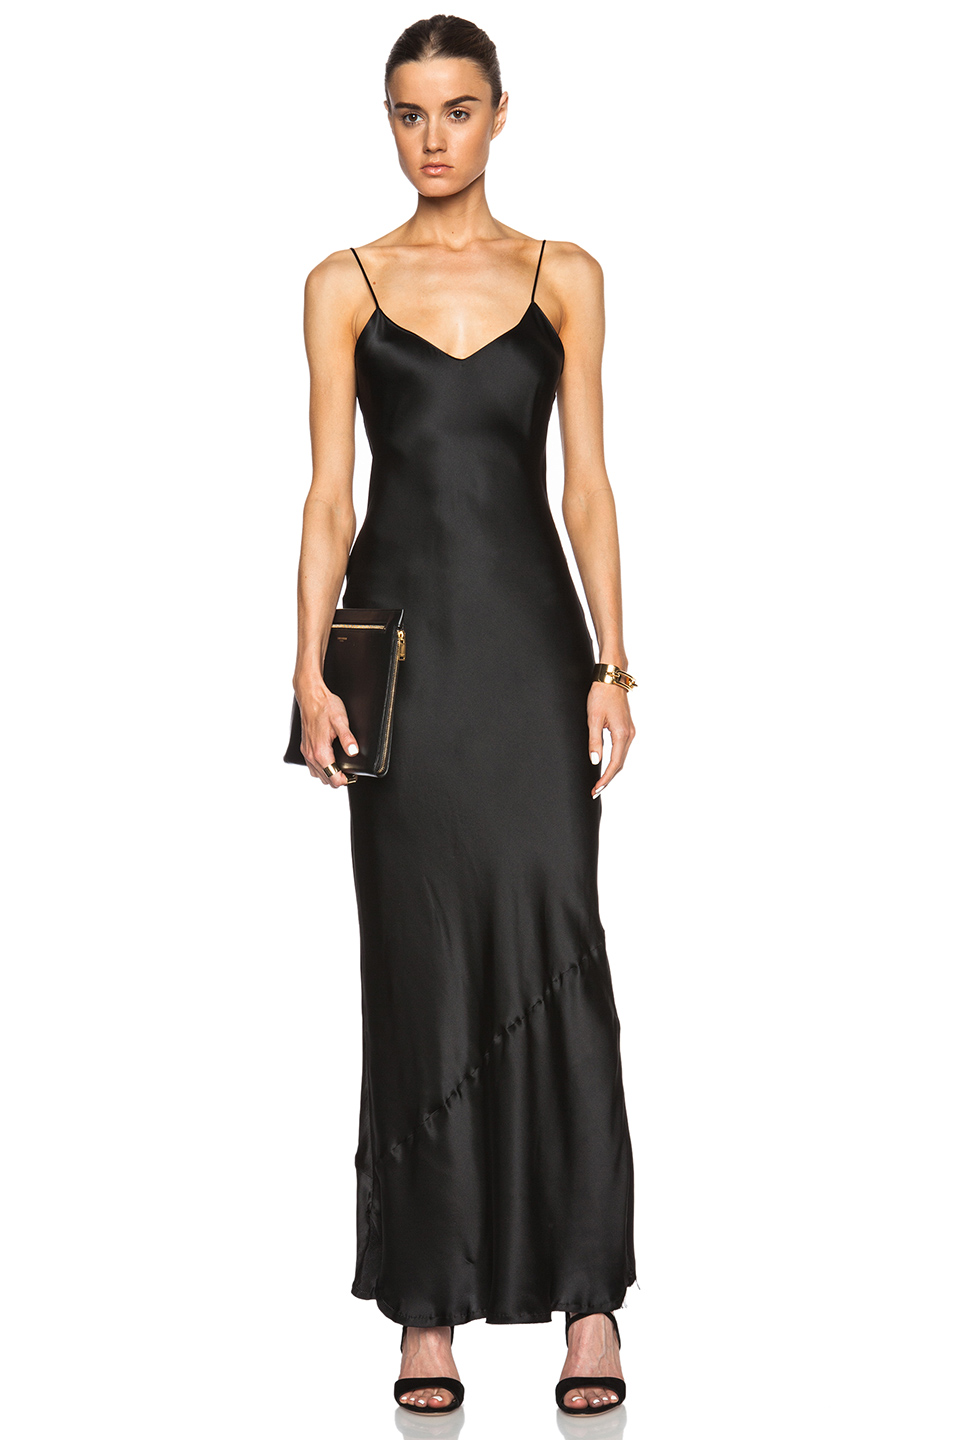 FAVORITE MAXI DRESSES AT FWRD - Silver Girl